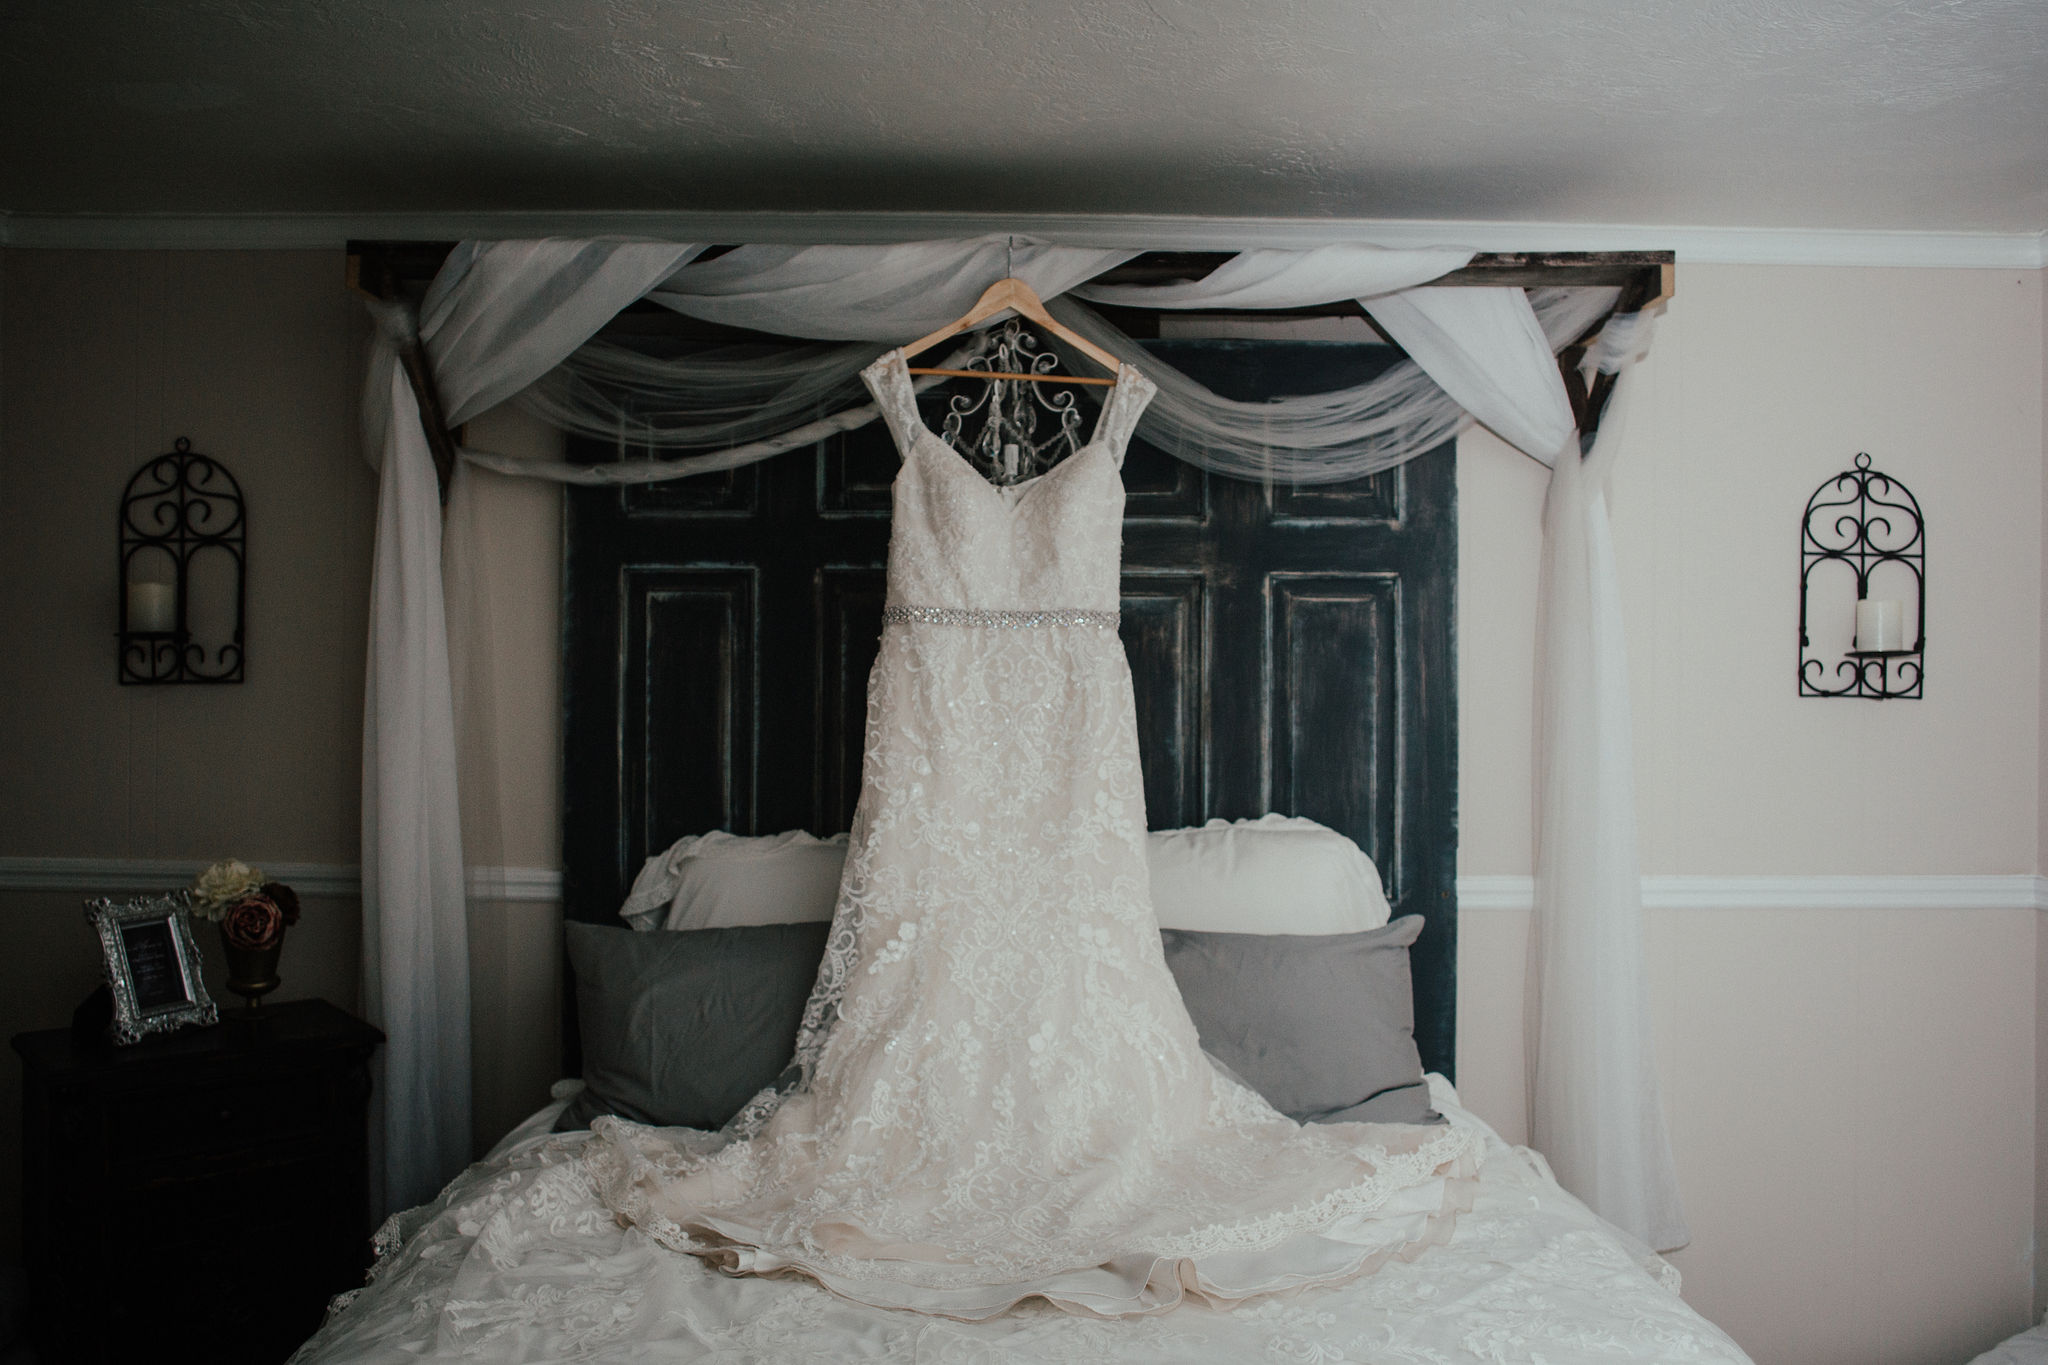 The bride's gorgeous dress hanging in the master bedroom at Bridle Oaks.